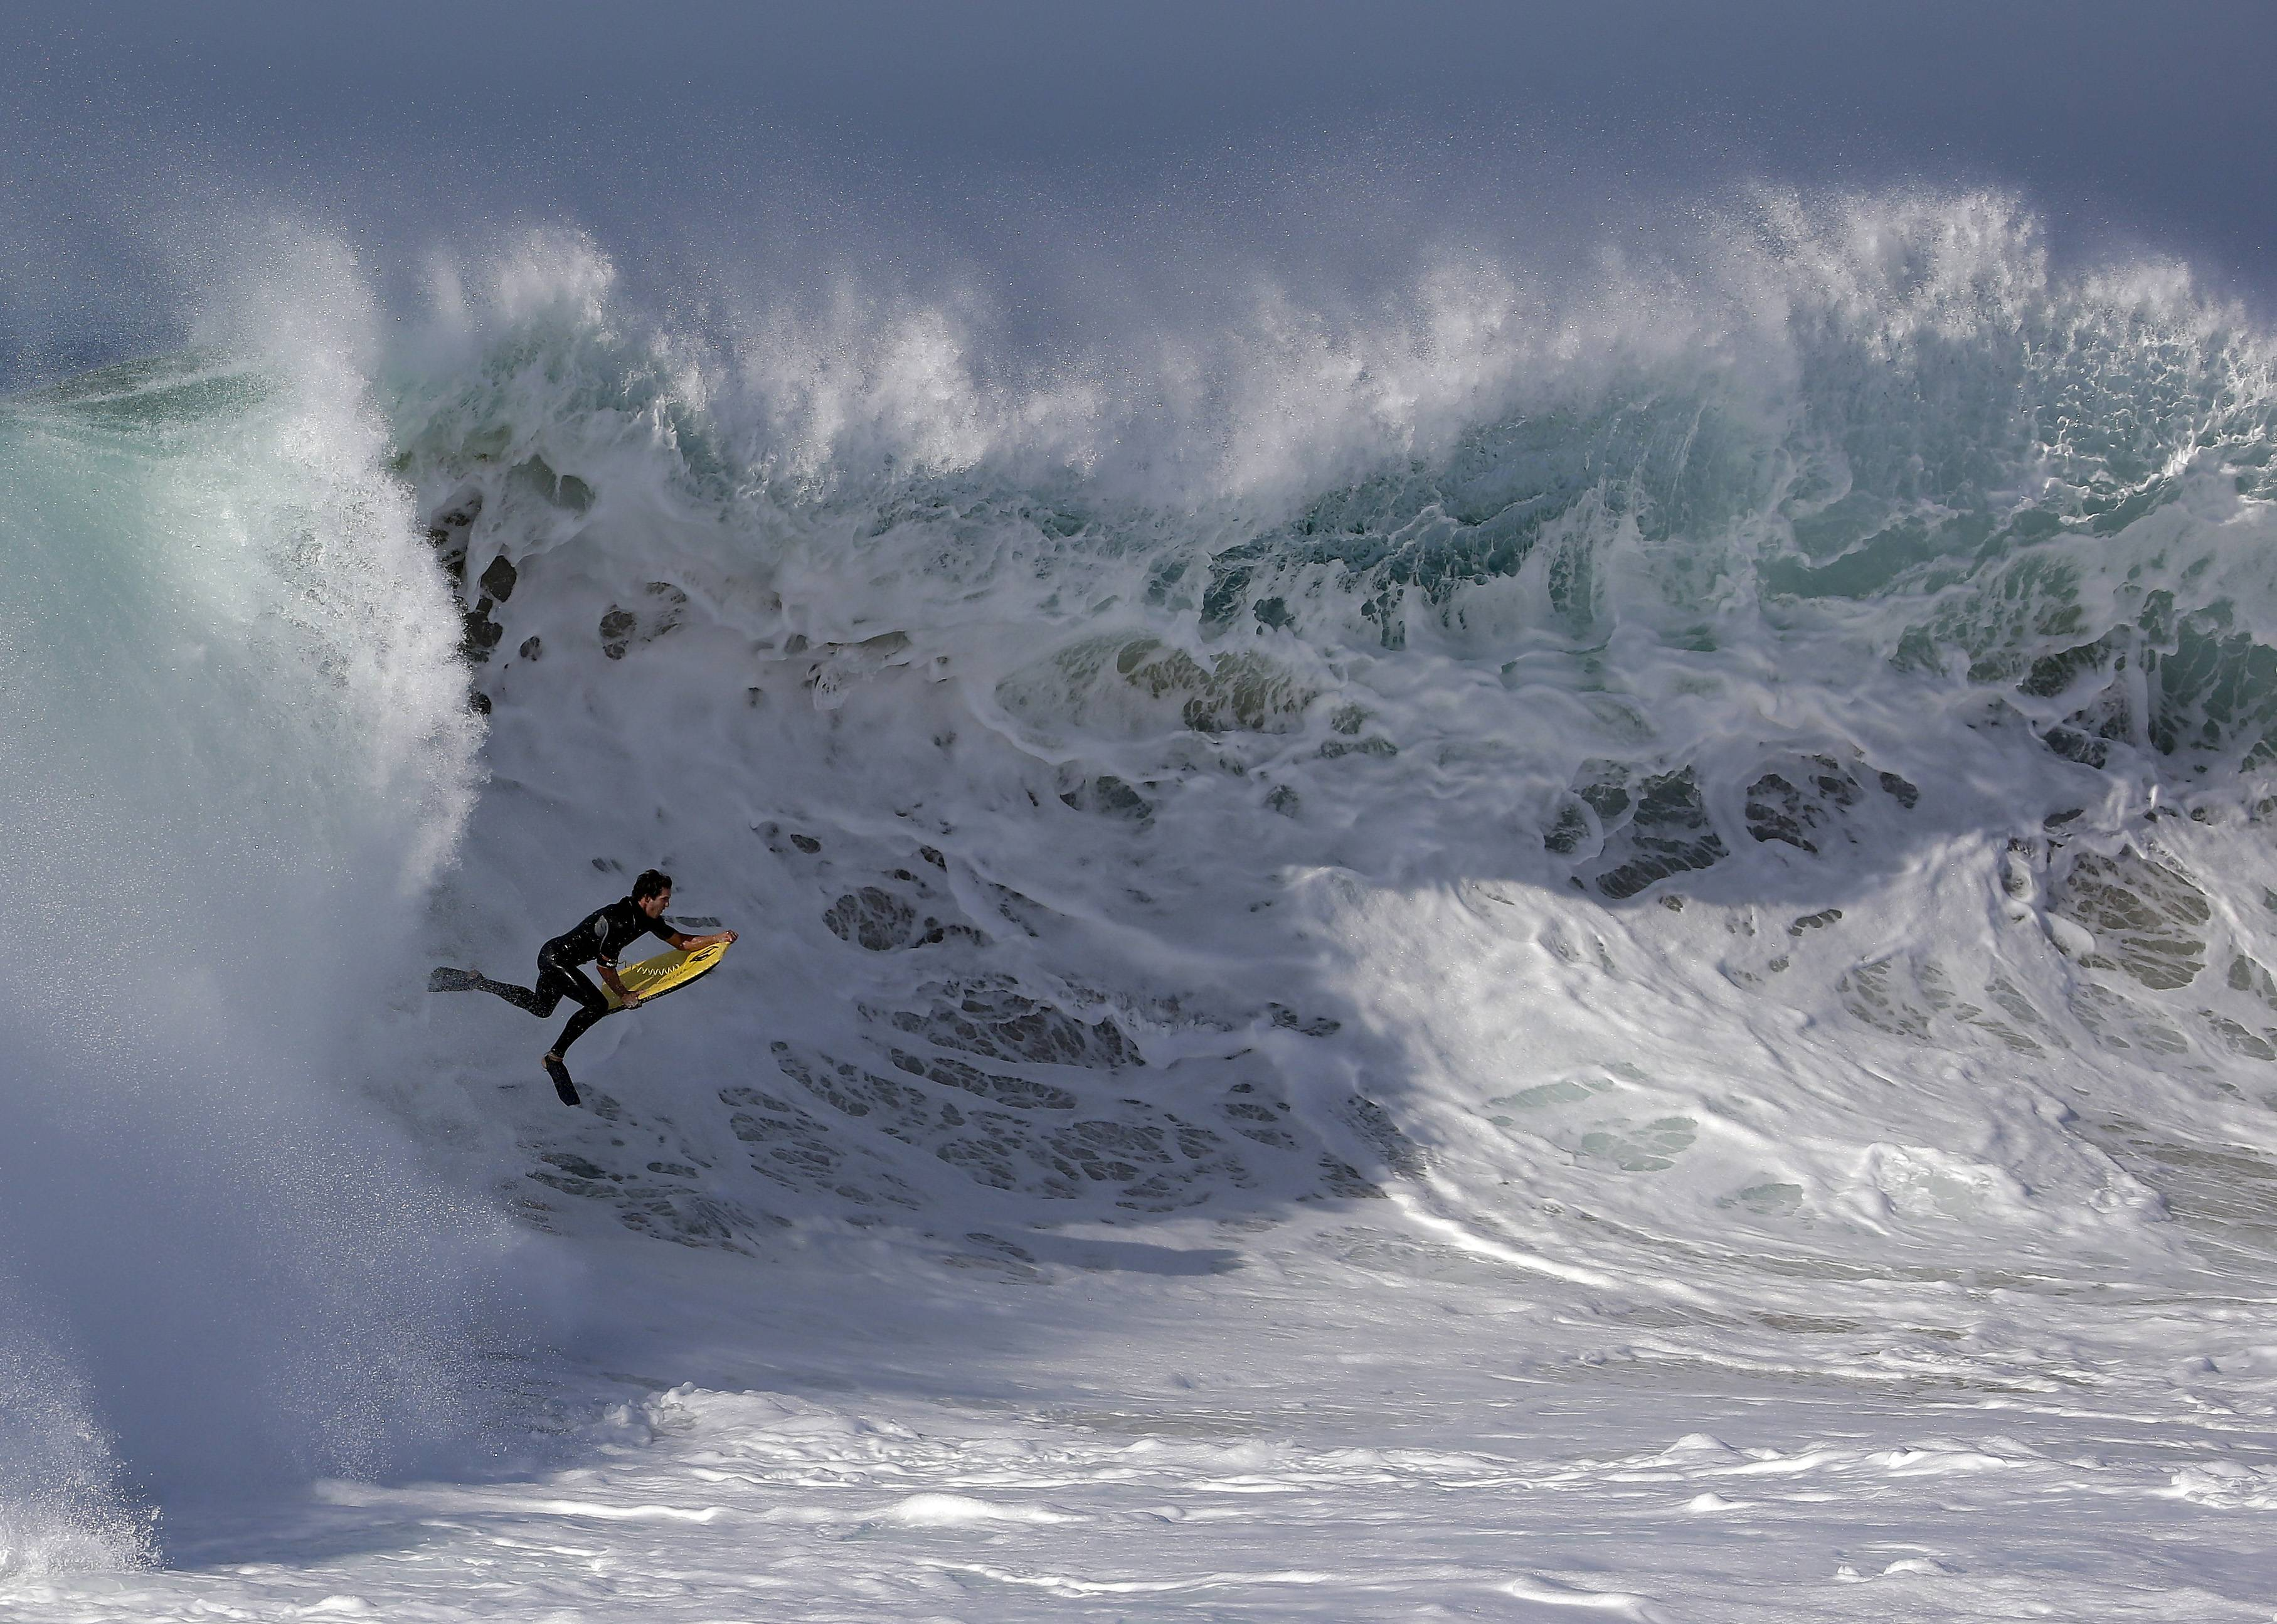 A bogieboarder rides a wave in Newport Beach, Calif., Wednesday, when Southern California beachgoers experienced much higher than normal surf, brought on by Hurricane Marie spinning off the coast of Mexico.